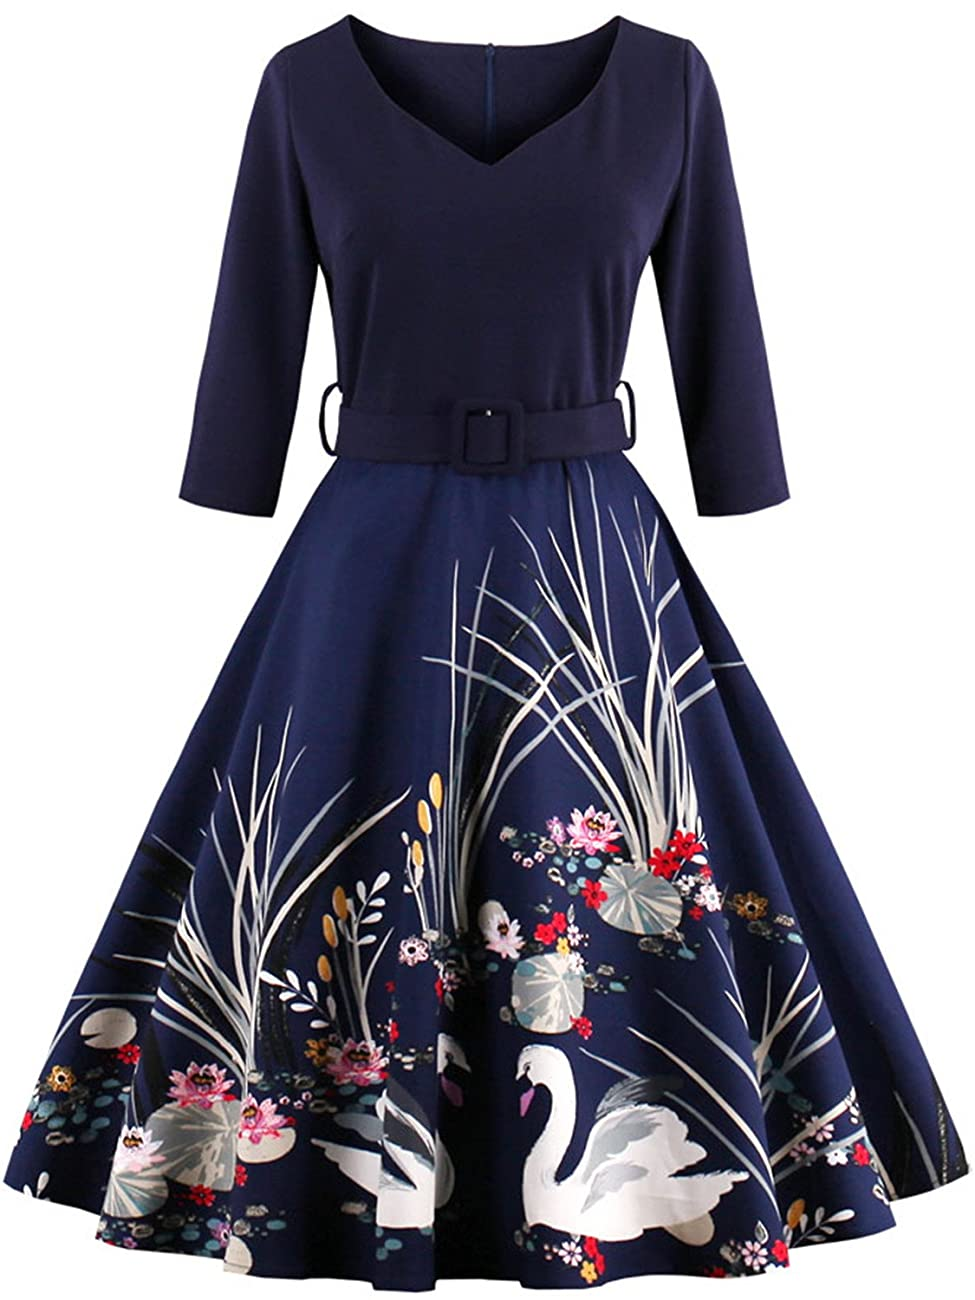 Babyonline Floral Vintage Women Dresses Half Sleeve 1950s Rockabilly Party Gown 0